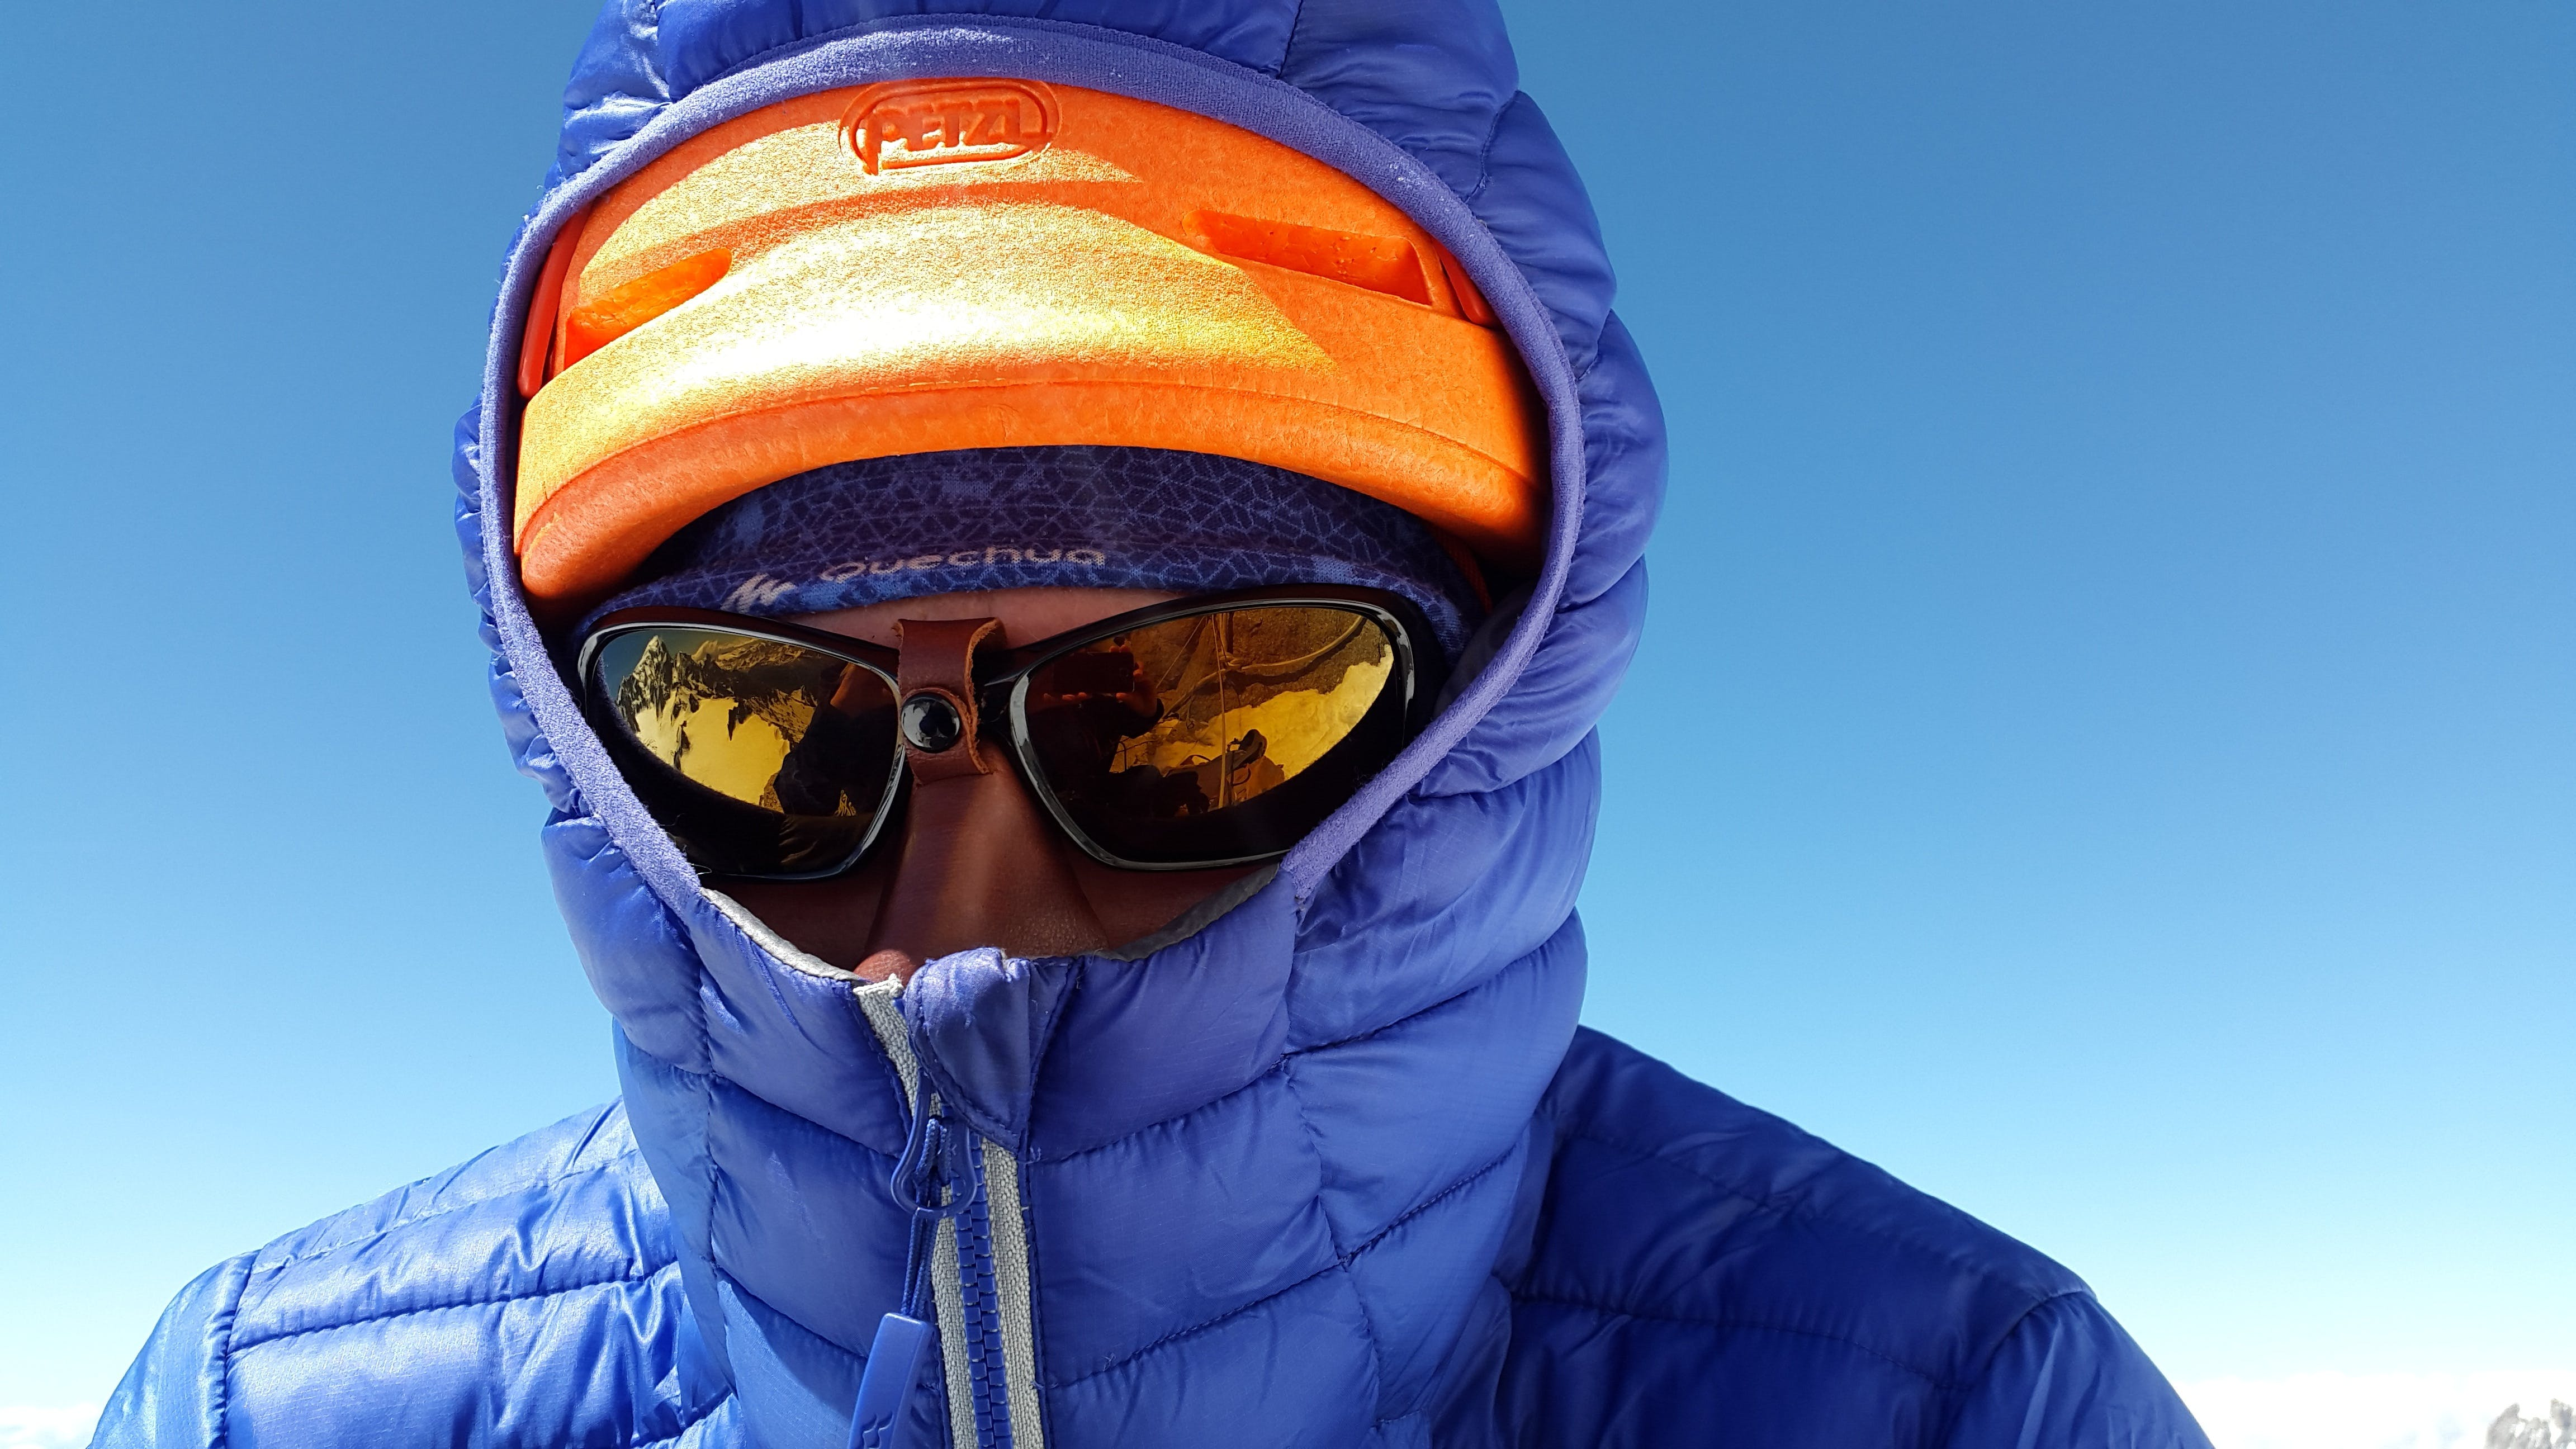 Free stock photo of cold, man, person, sunglasses